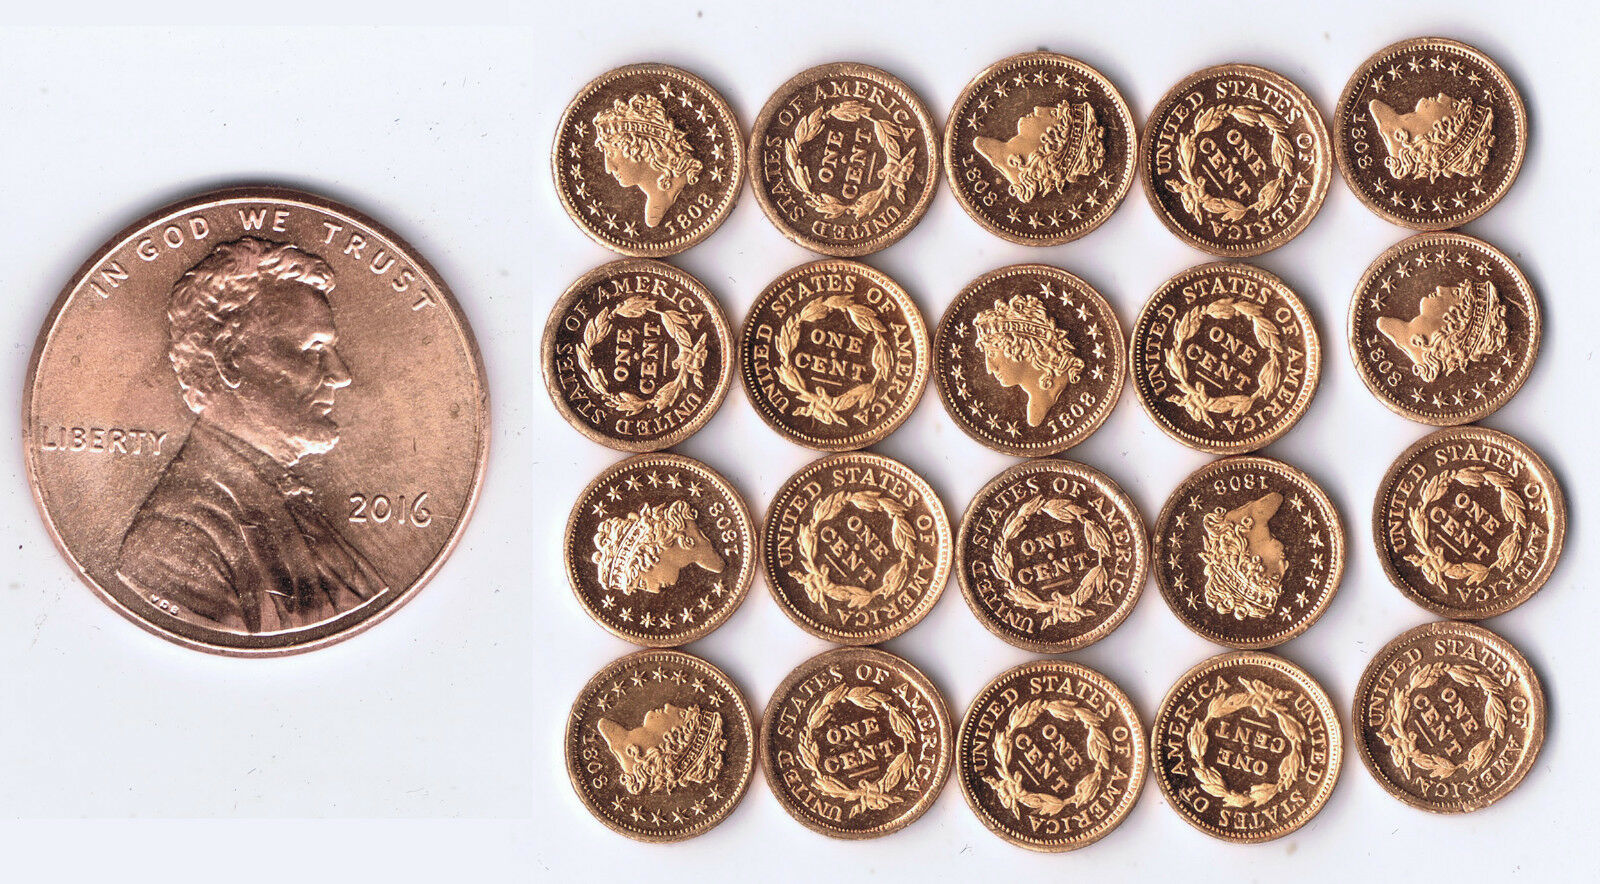 WHOLESALE USA 1808 CLASSIC CENT 20 PIECES FRANKLIN MINT HIGH QUALITY MINI PROOFS